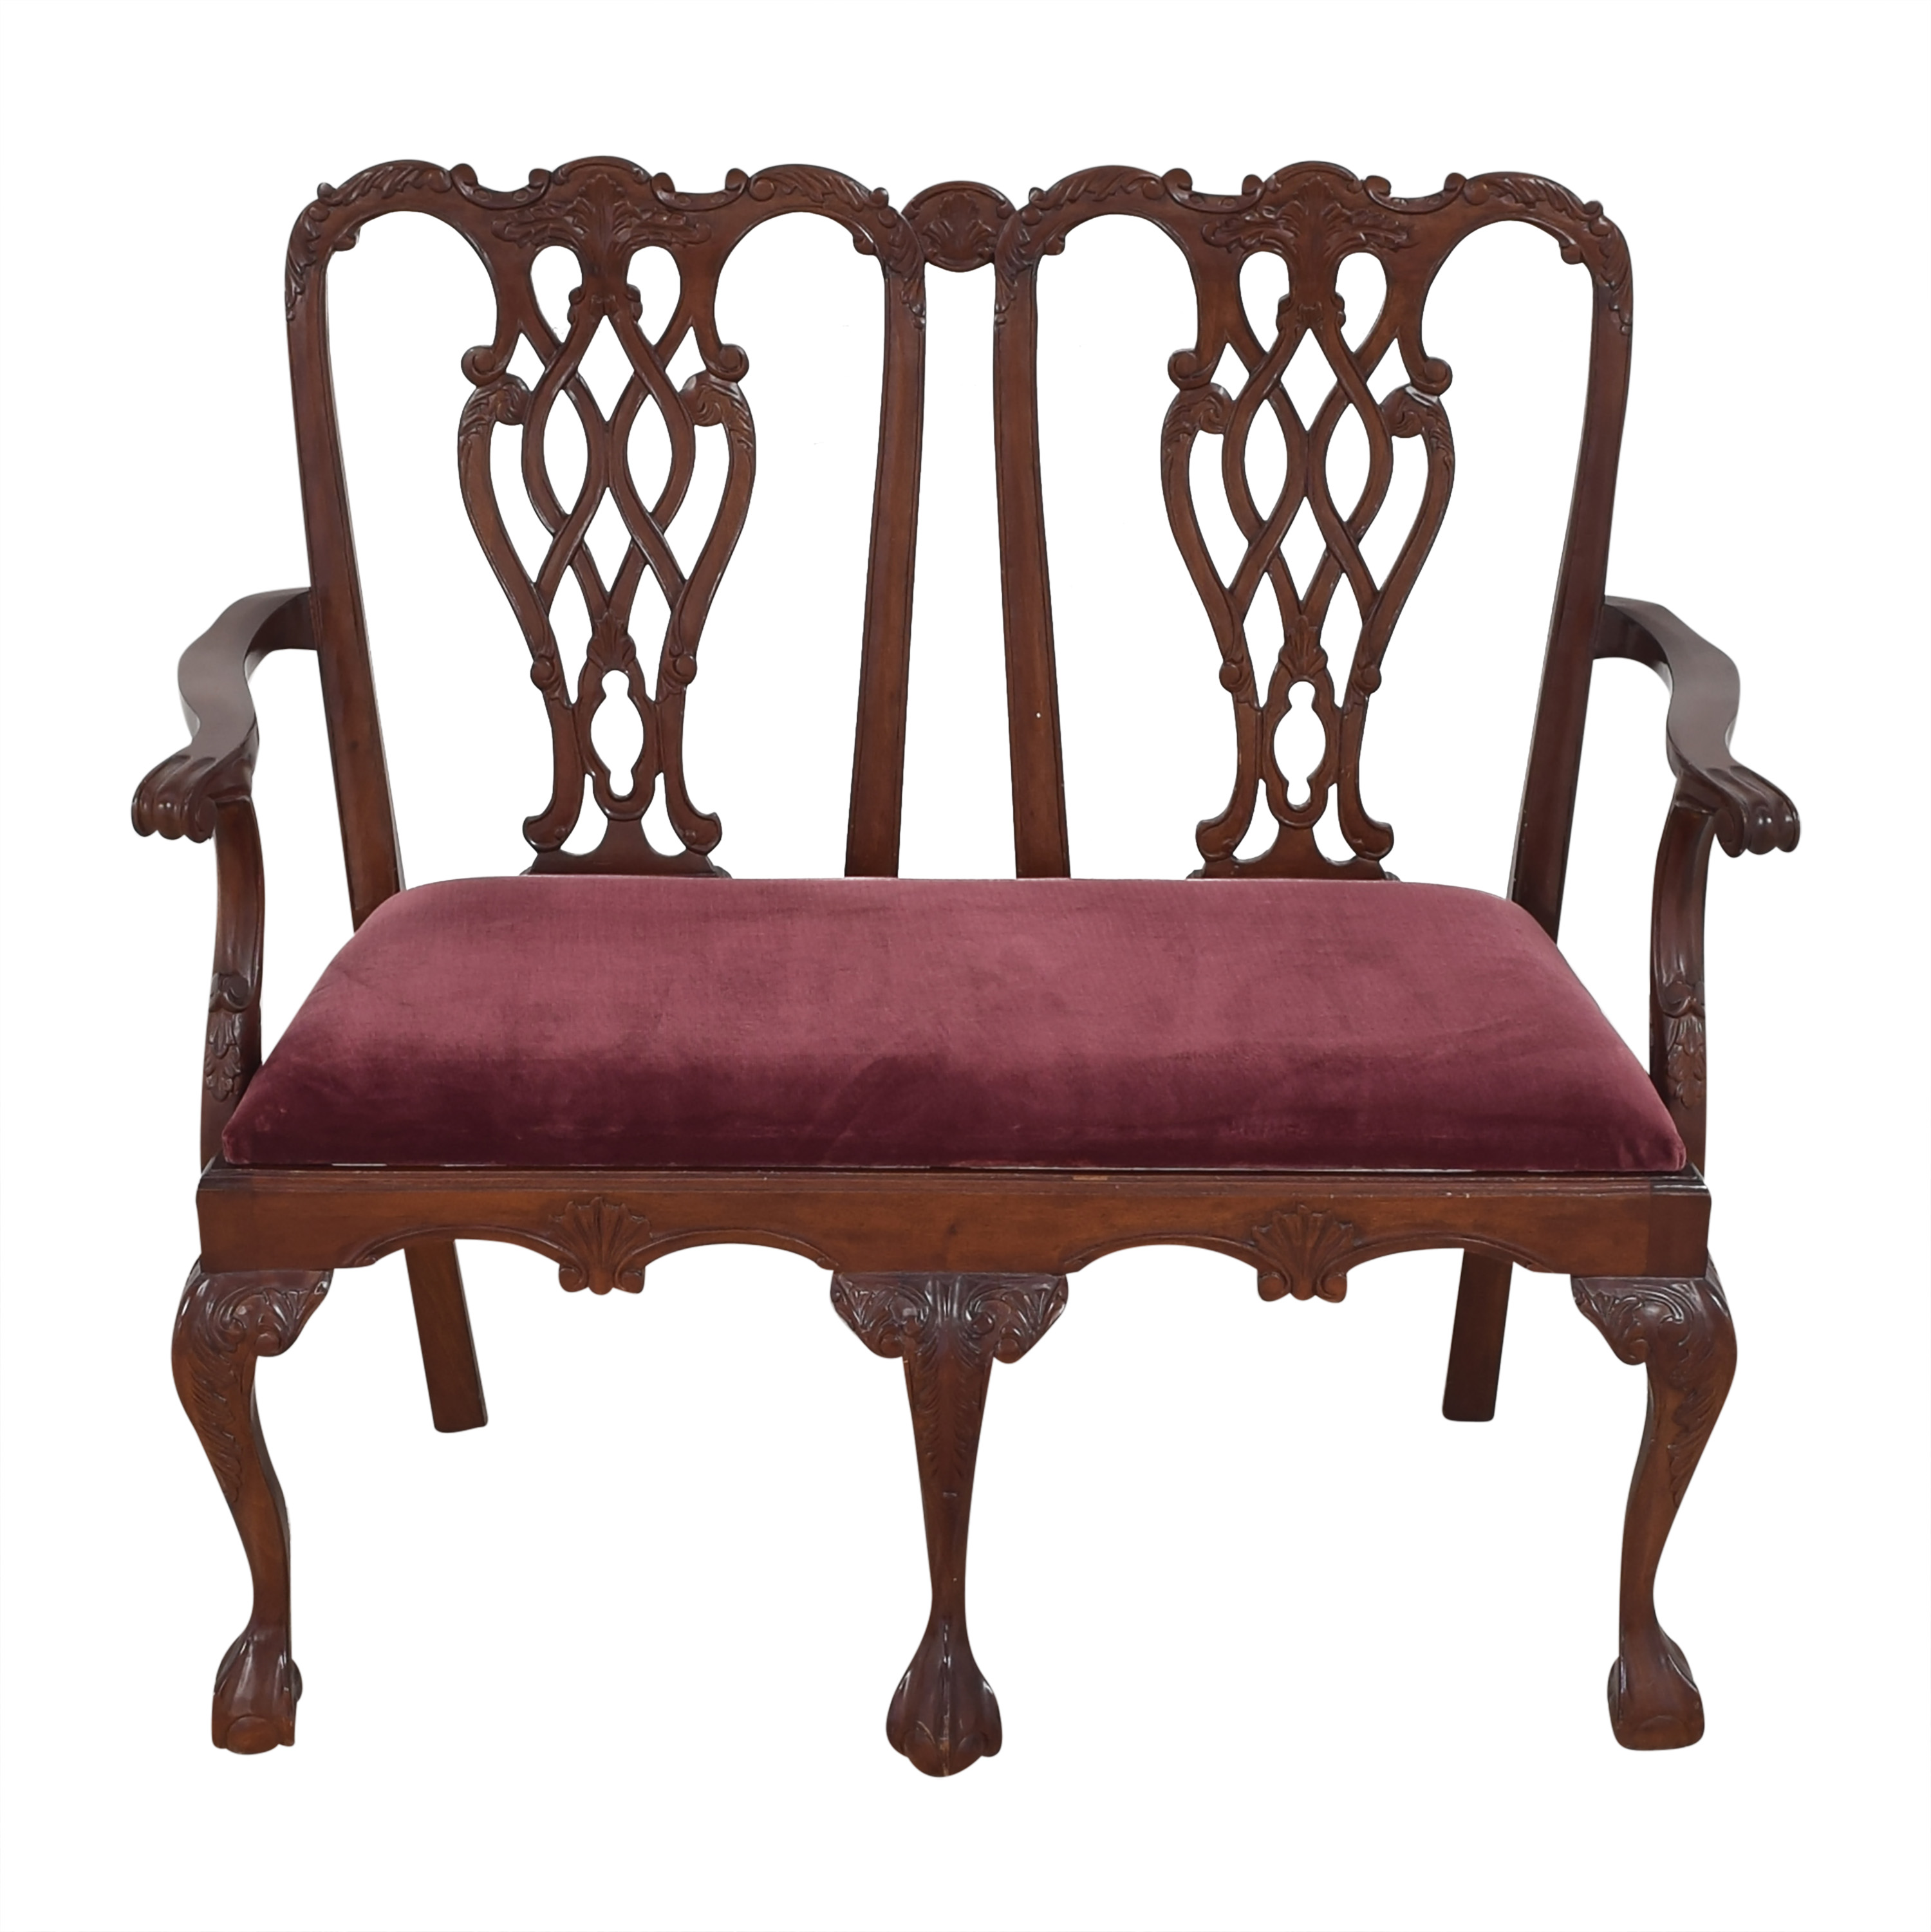 Chippendale Ball and Claw Settee / Chairs